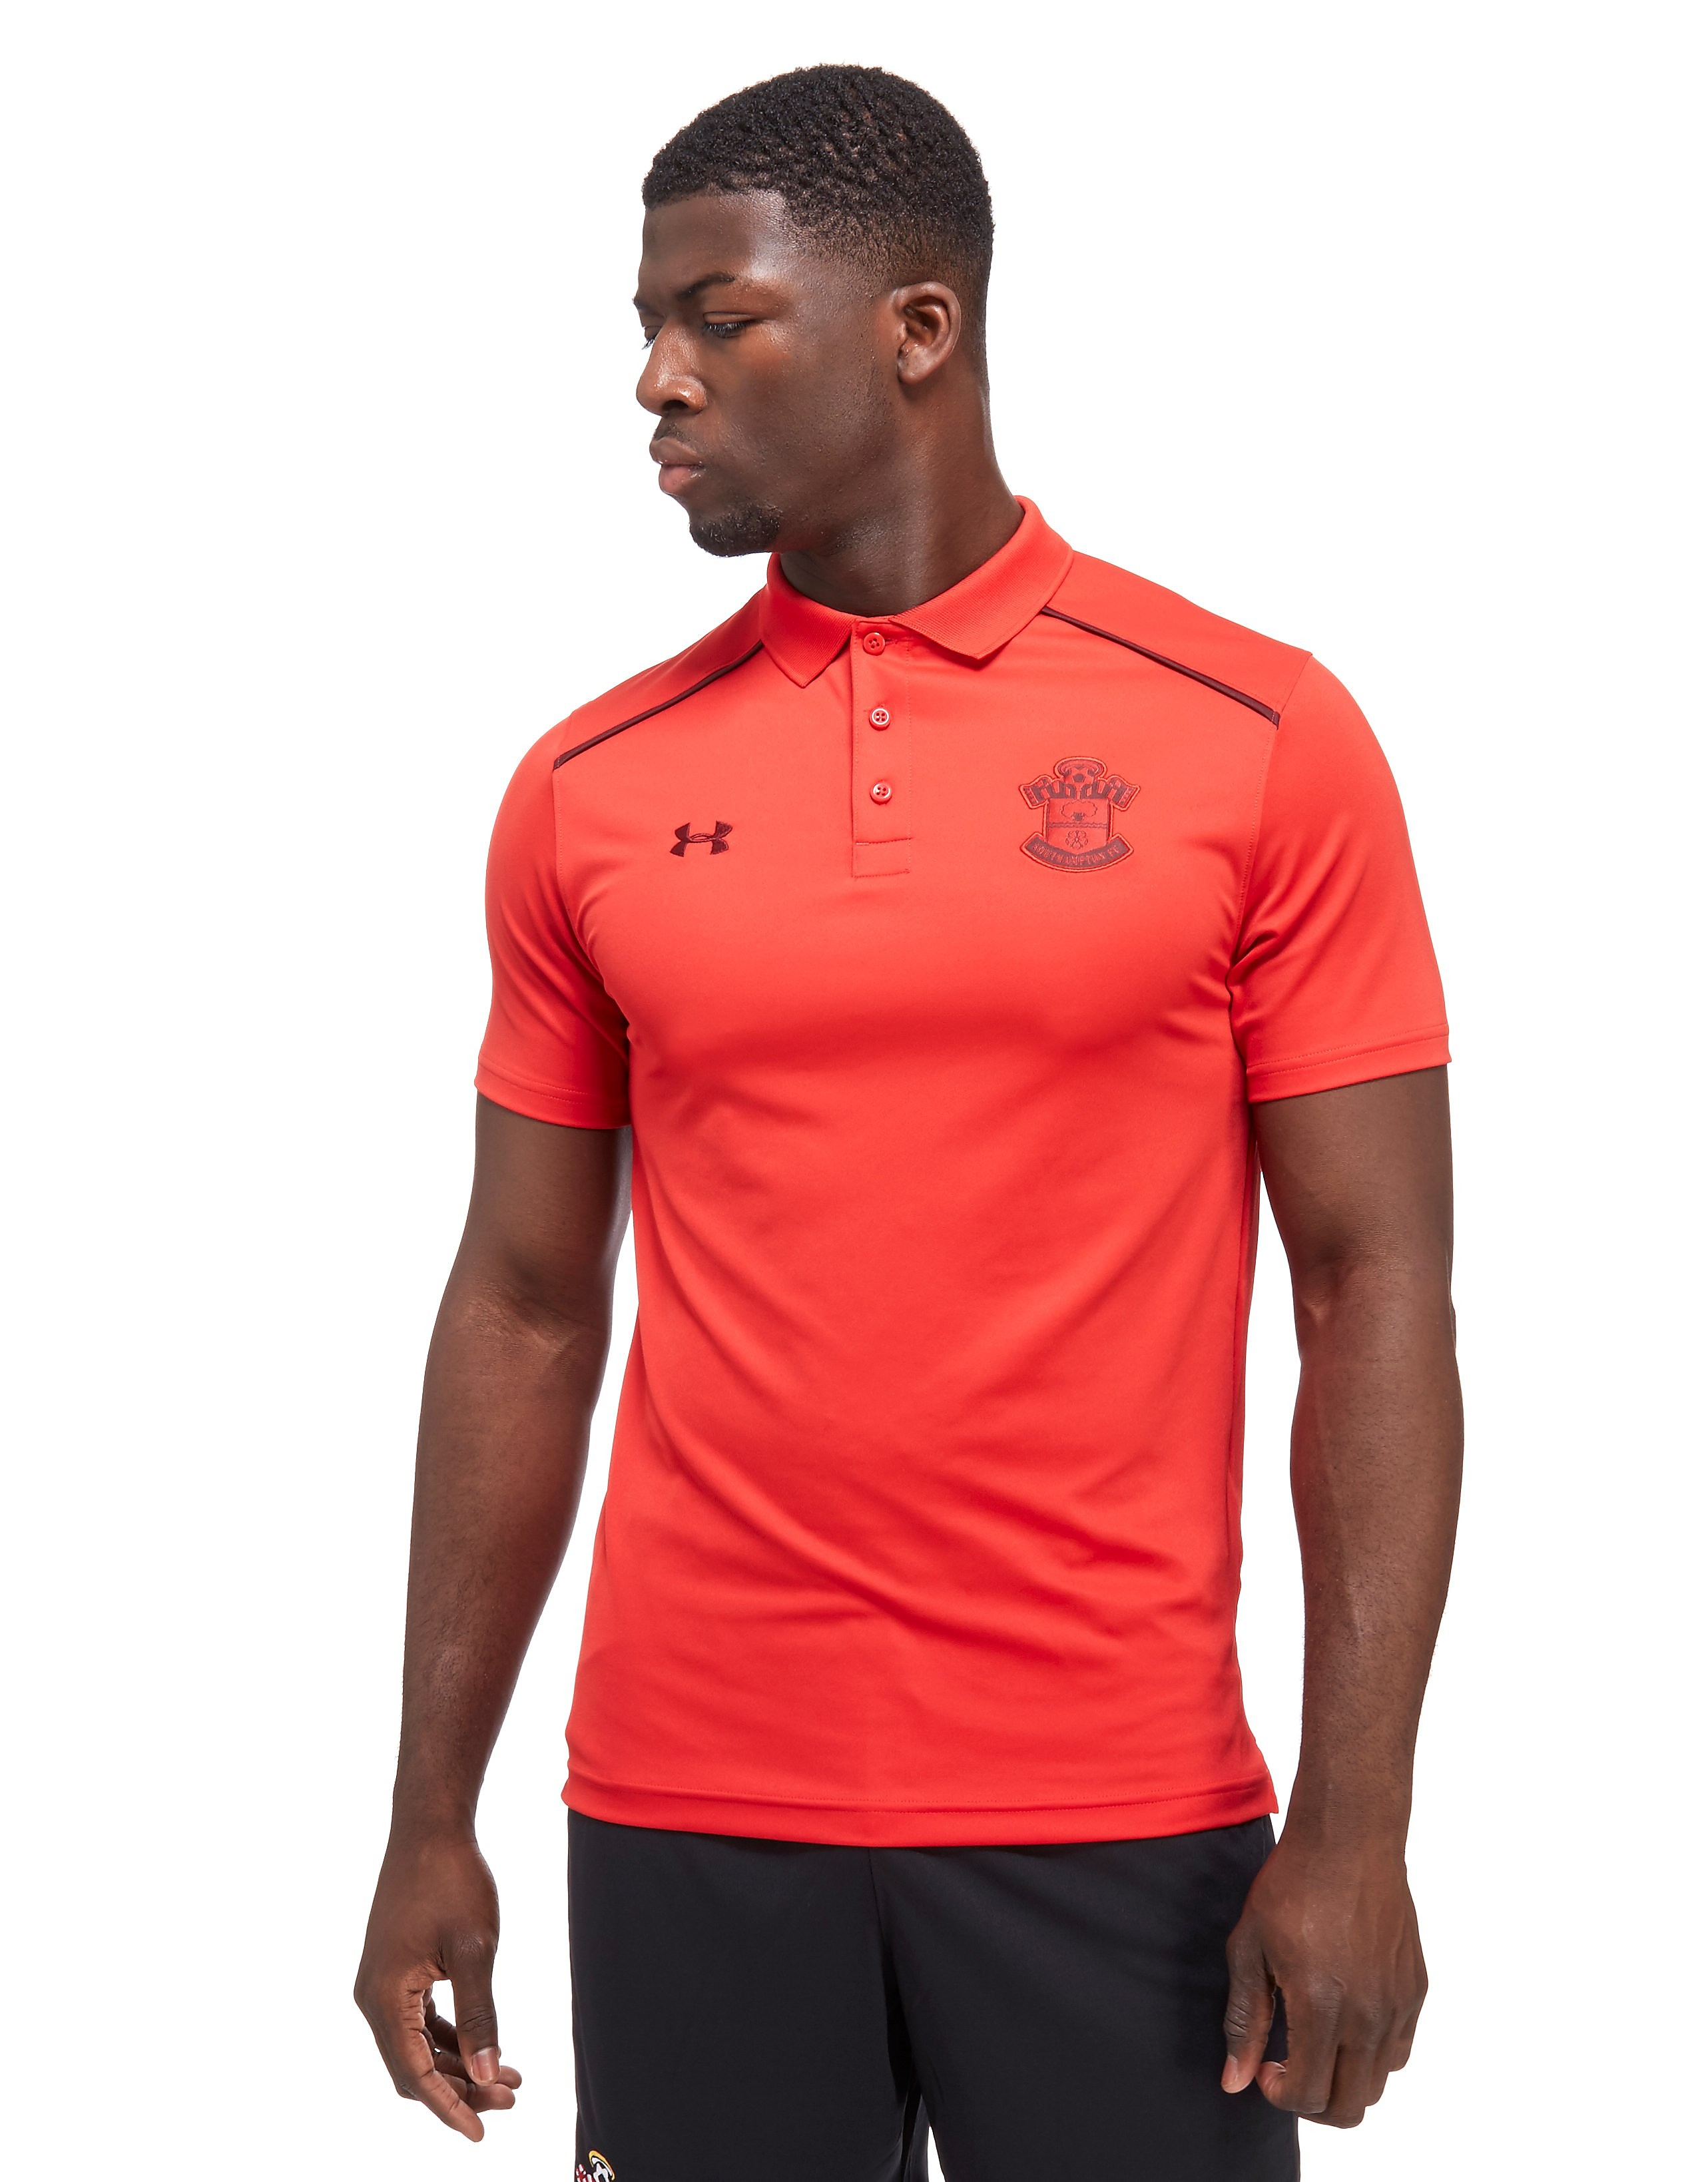 Under Armour Southampton FC 2017 Team Polo Shirt